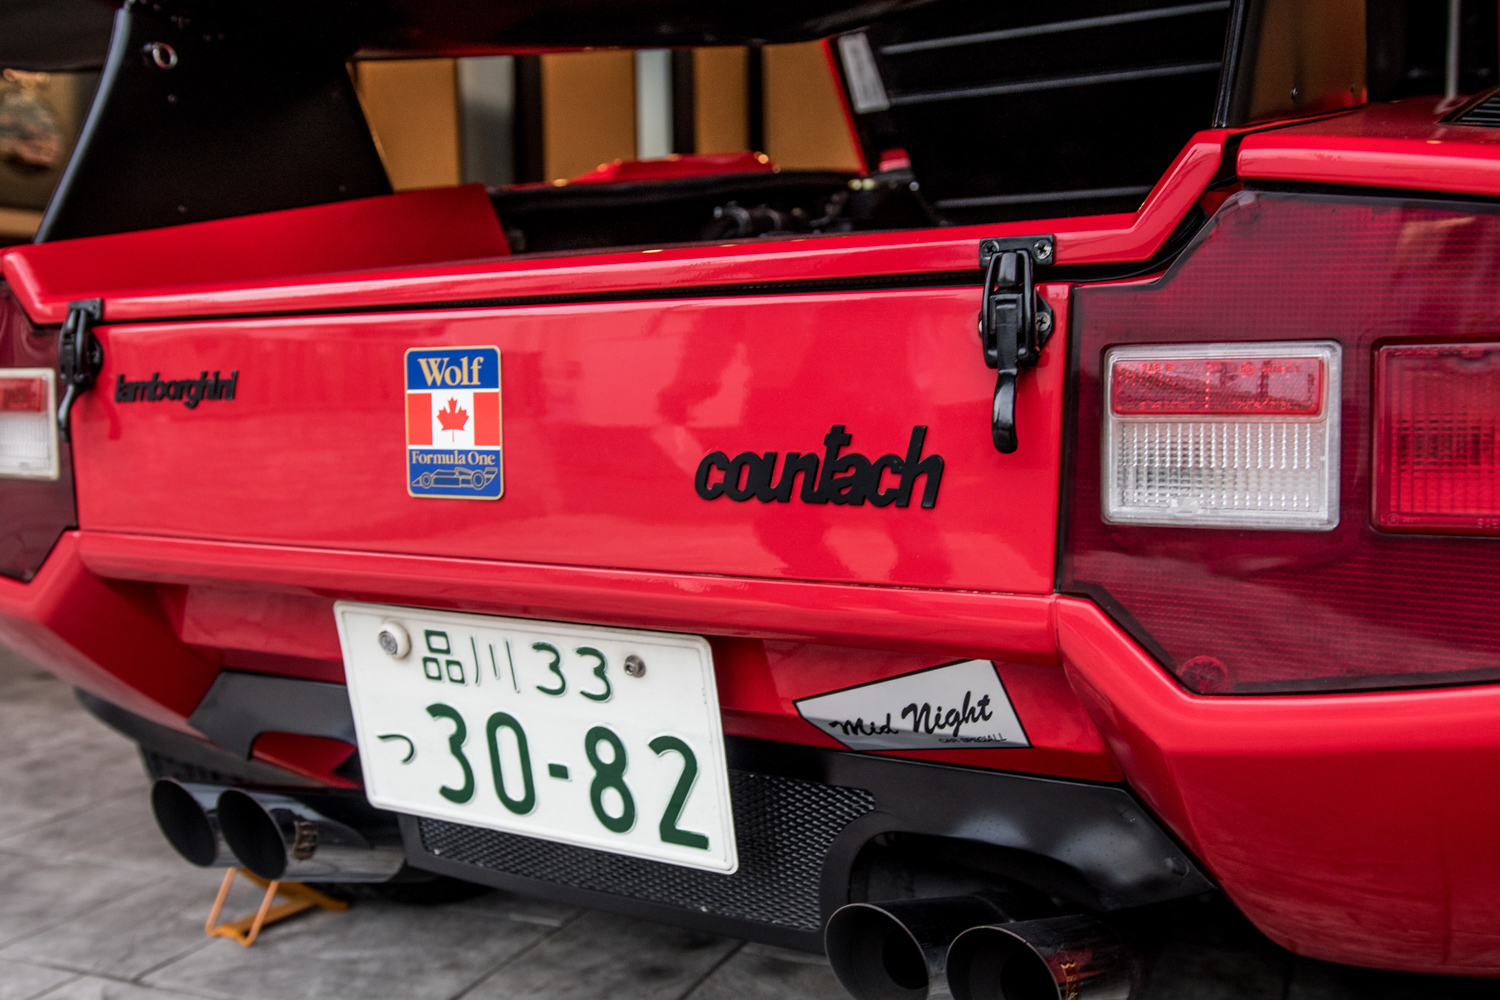 mike wolf lambo countach rear deck detail